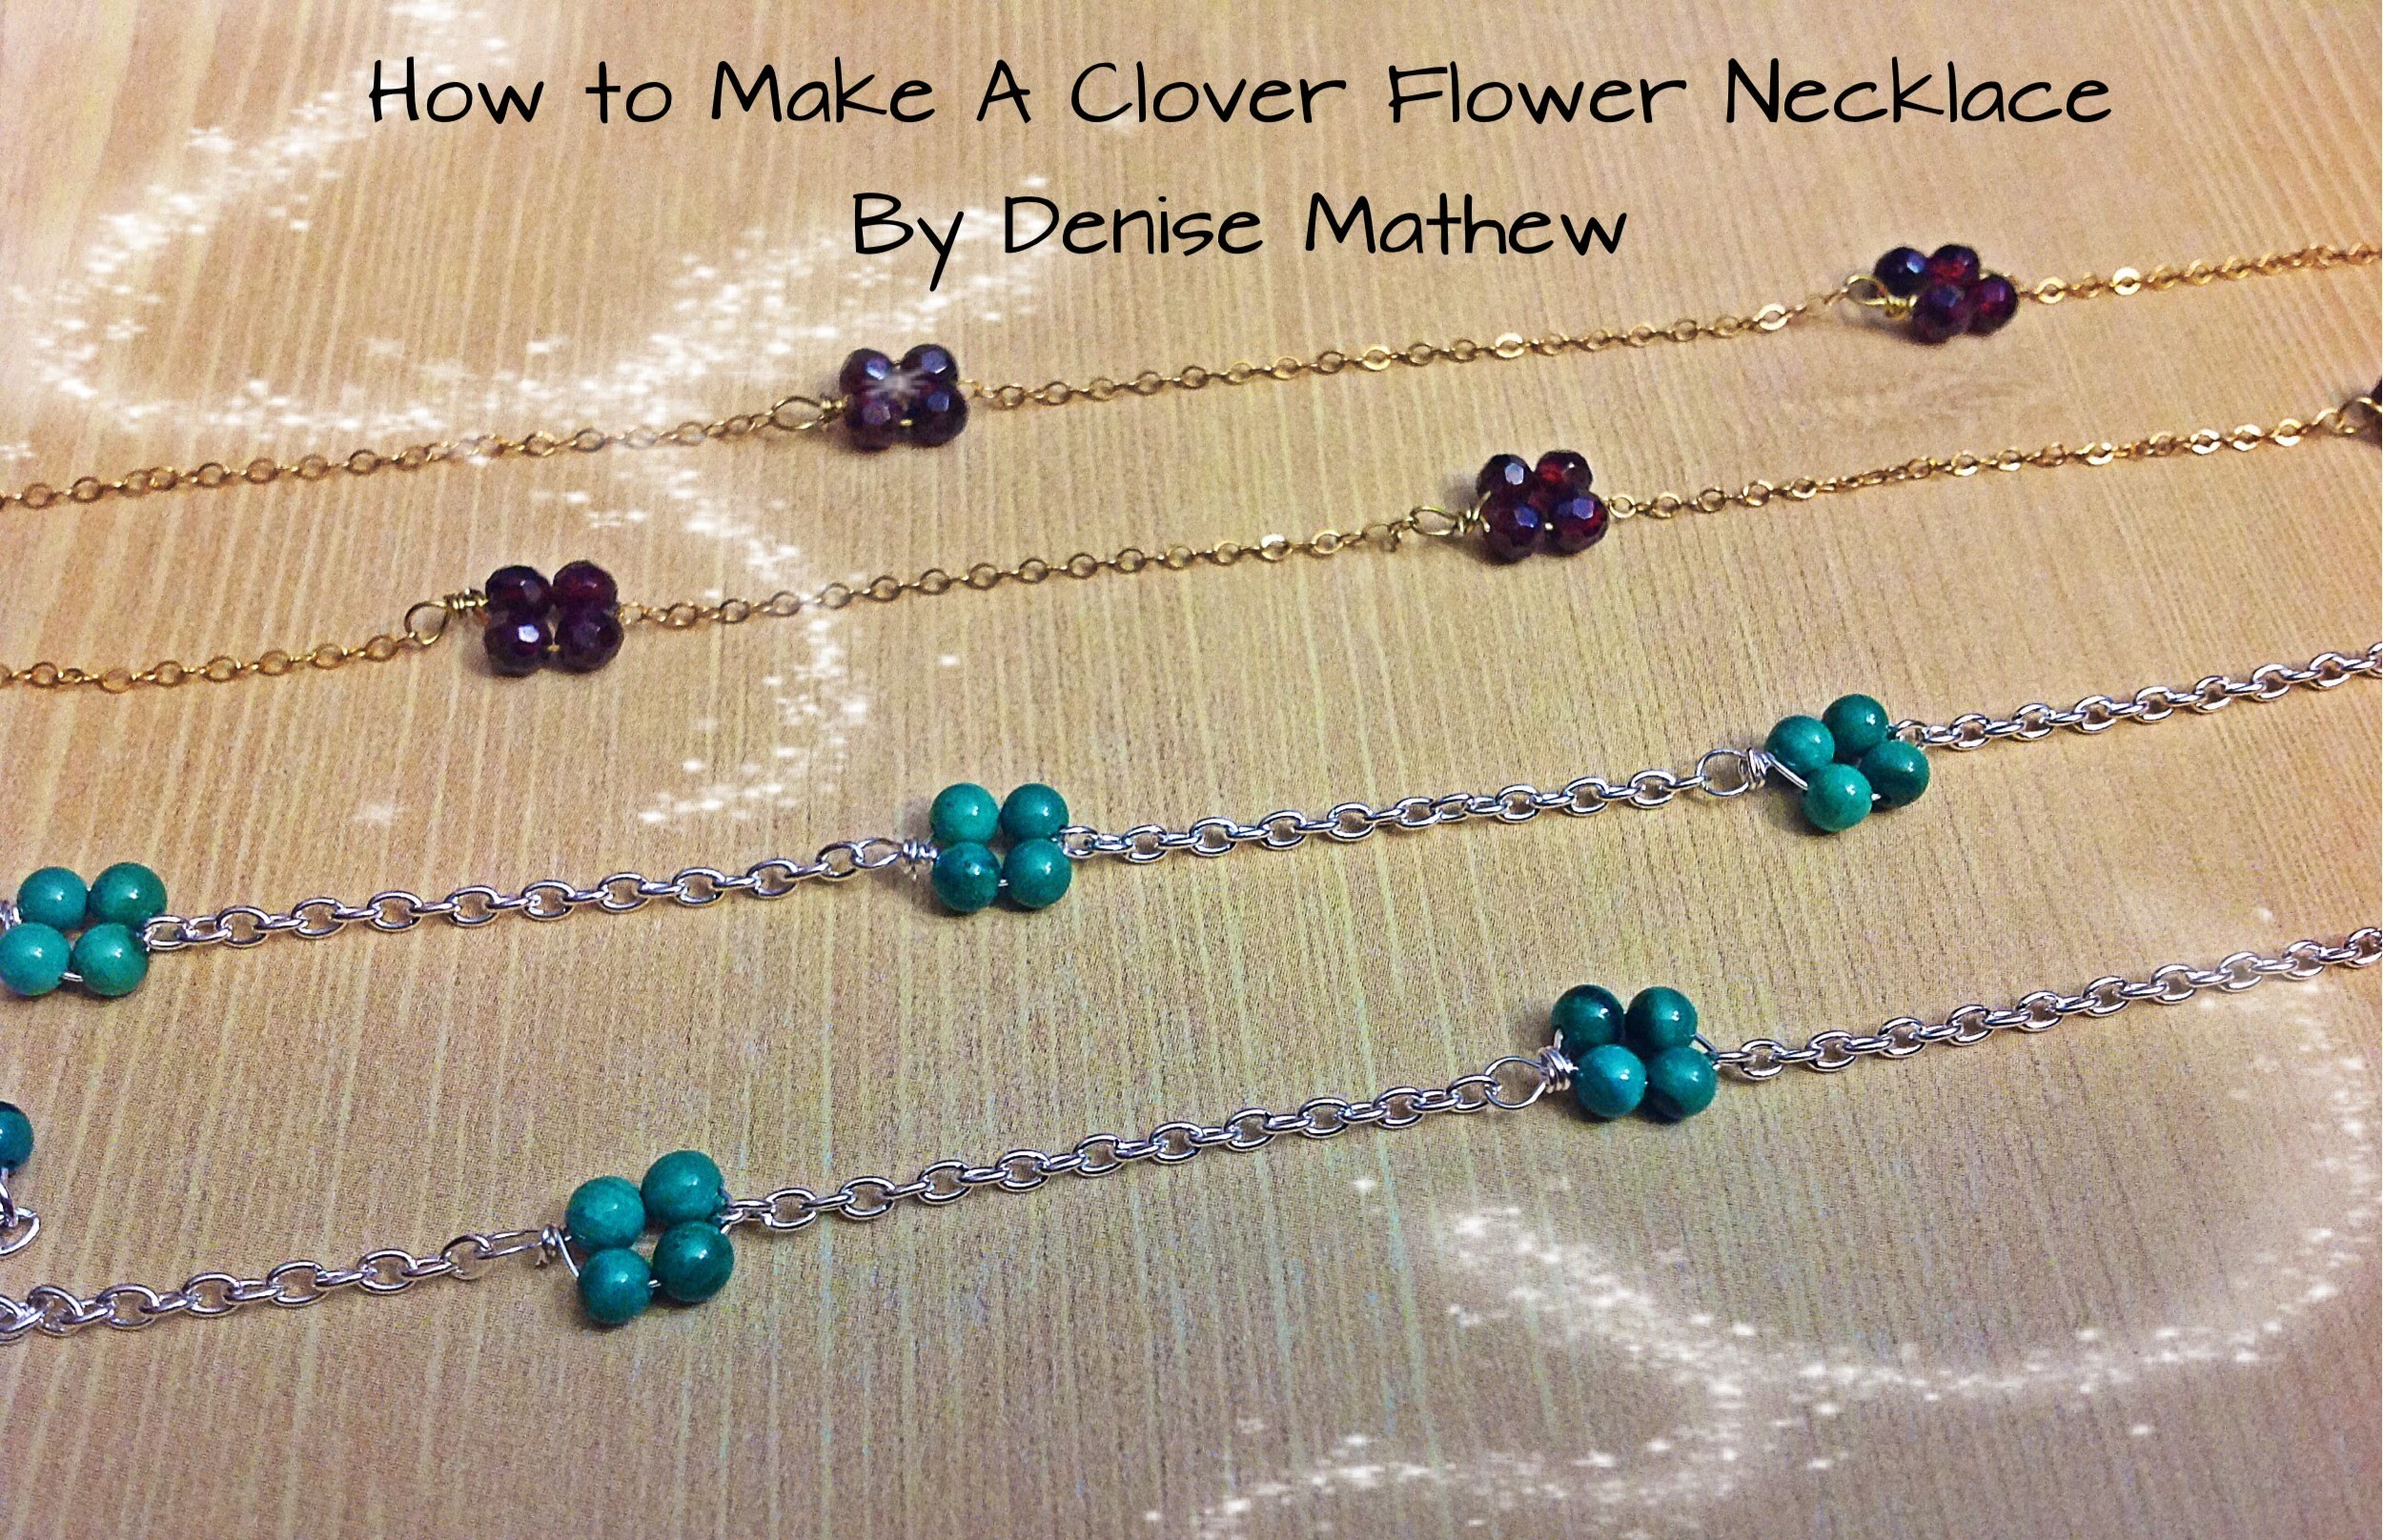 How to Make a Clover Flower Necklace by Denise Mathew